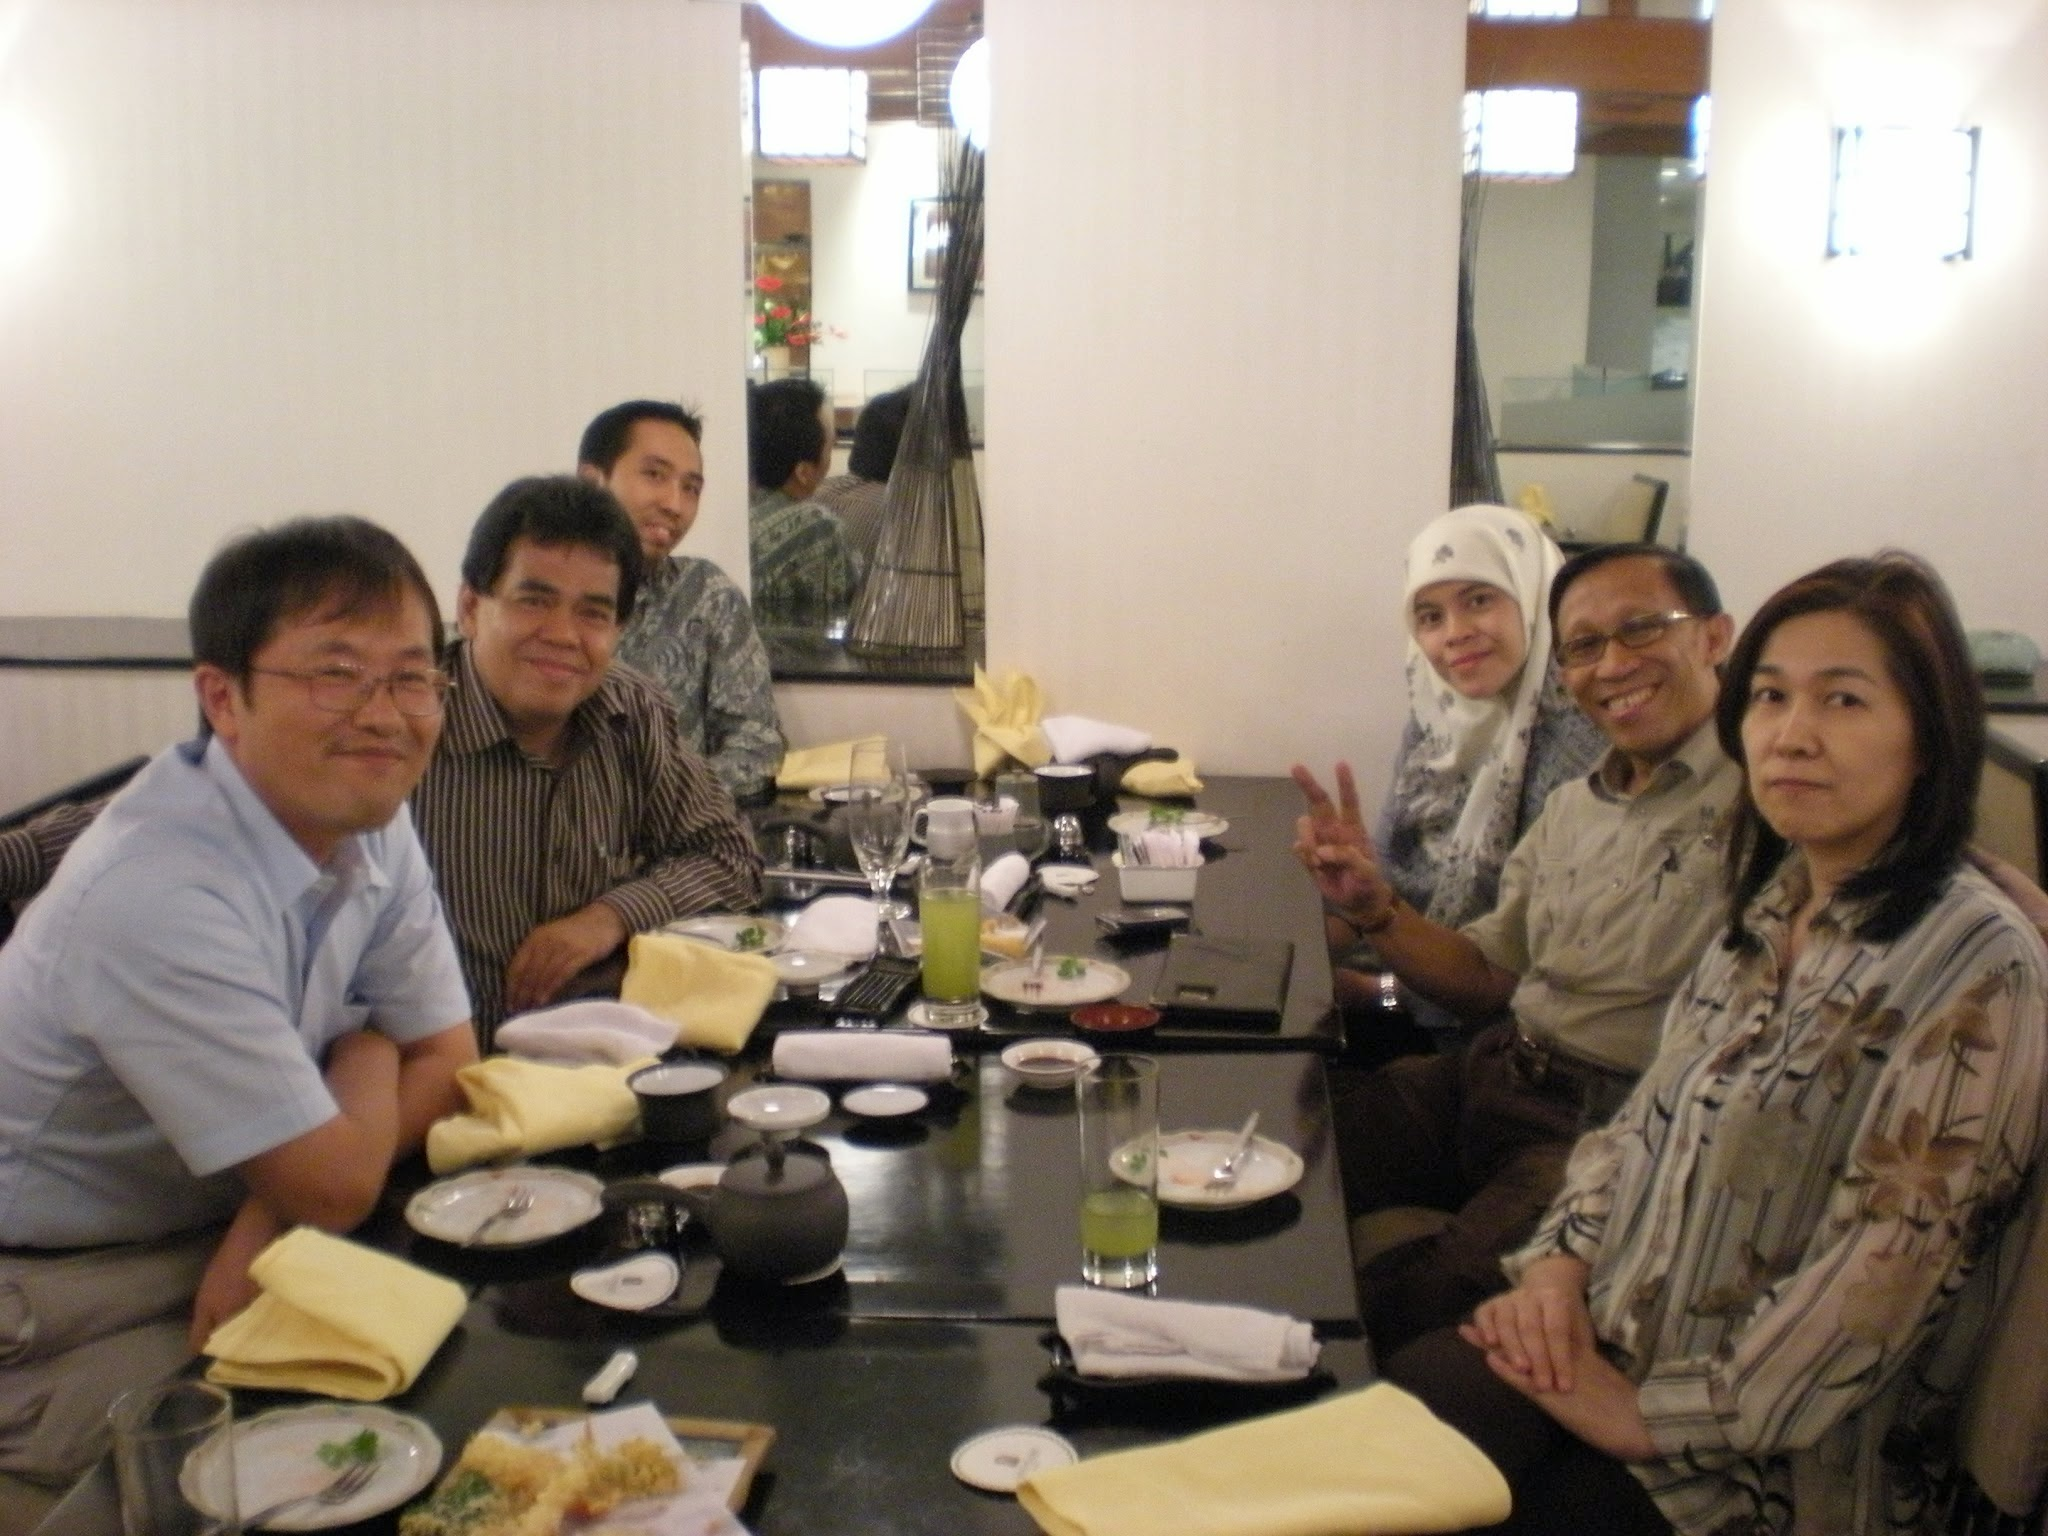 Photo: dinner at Sari Pan Pacific, where I stayed, with Dr. Hafnan (photo by Dr. Sumadi)